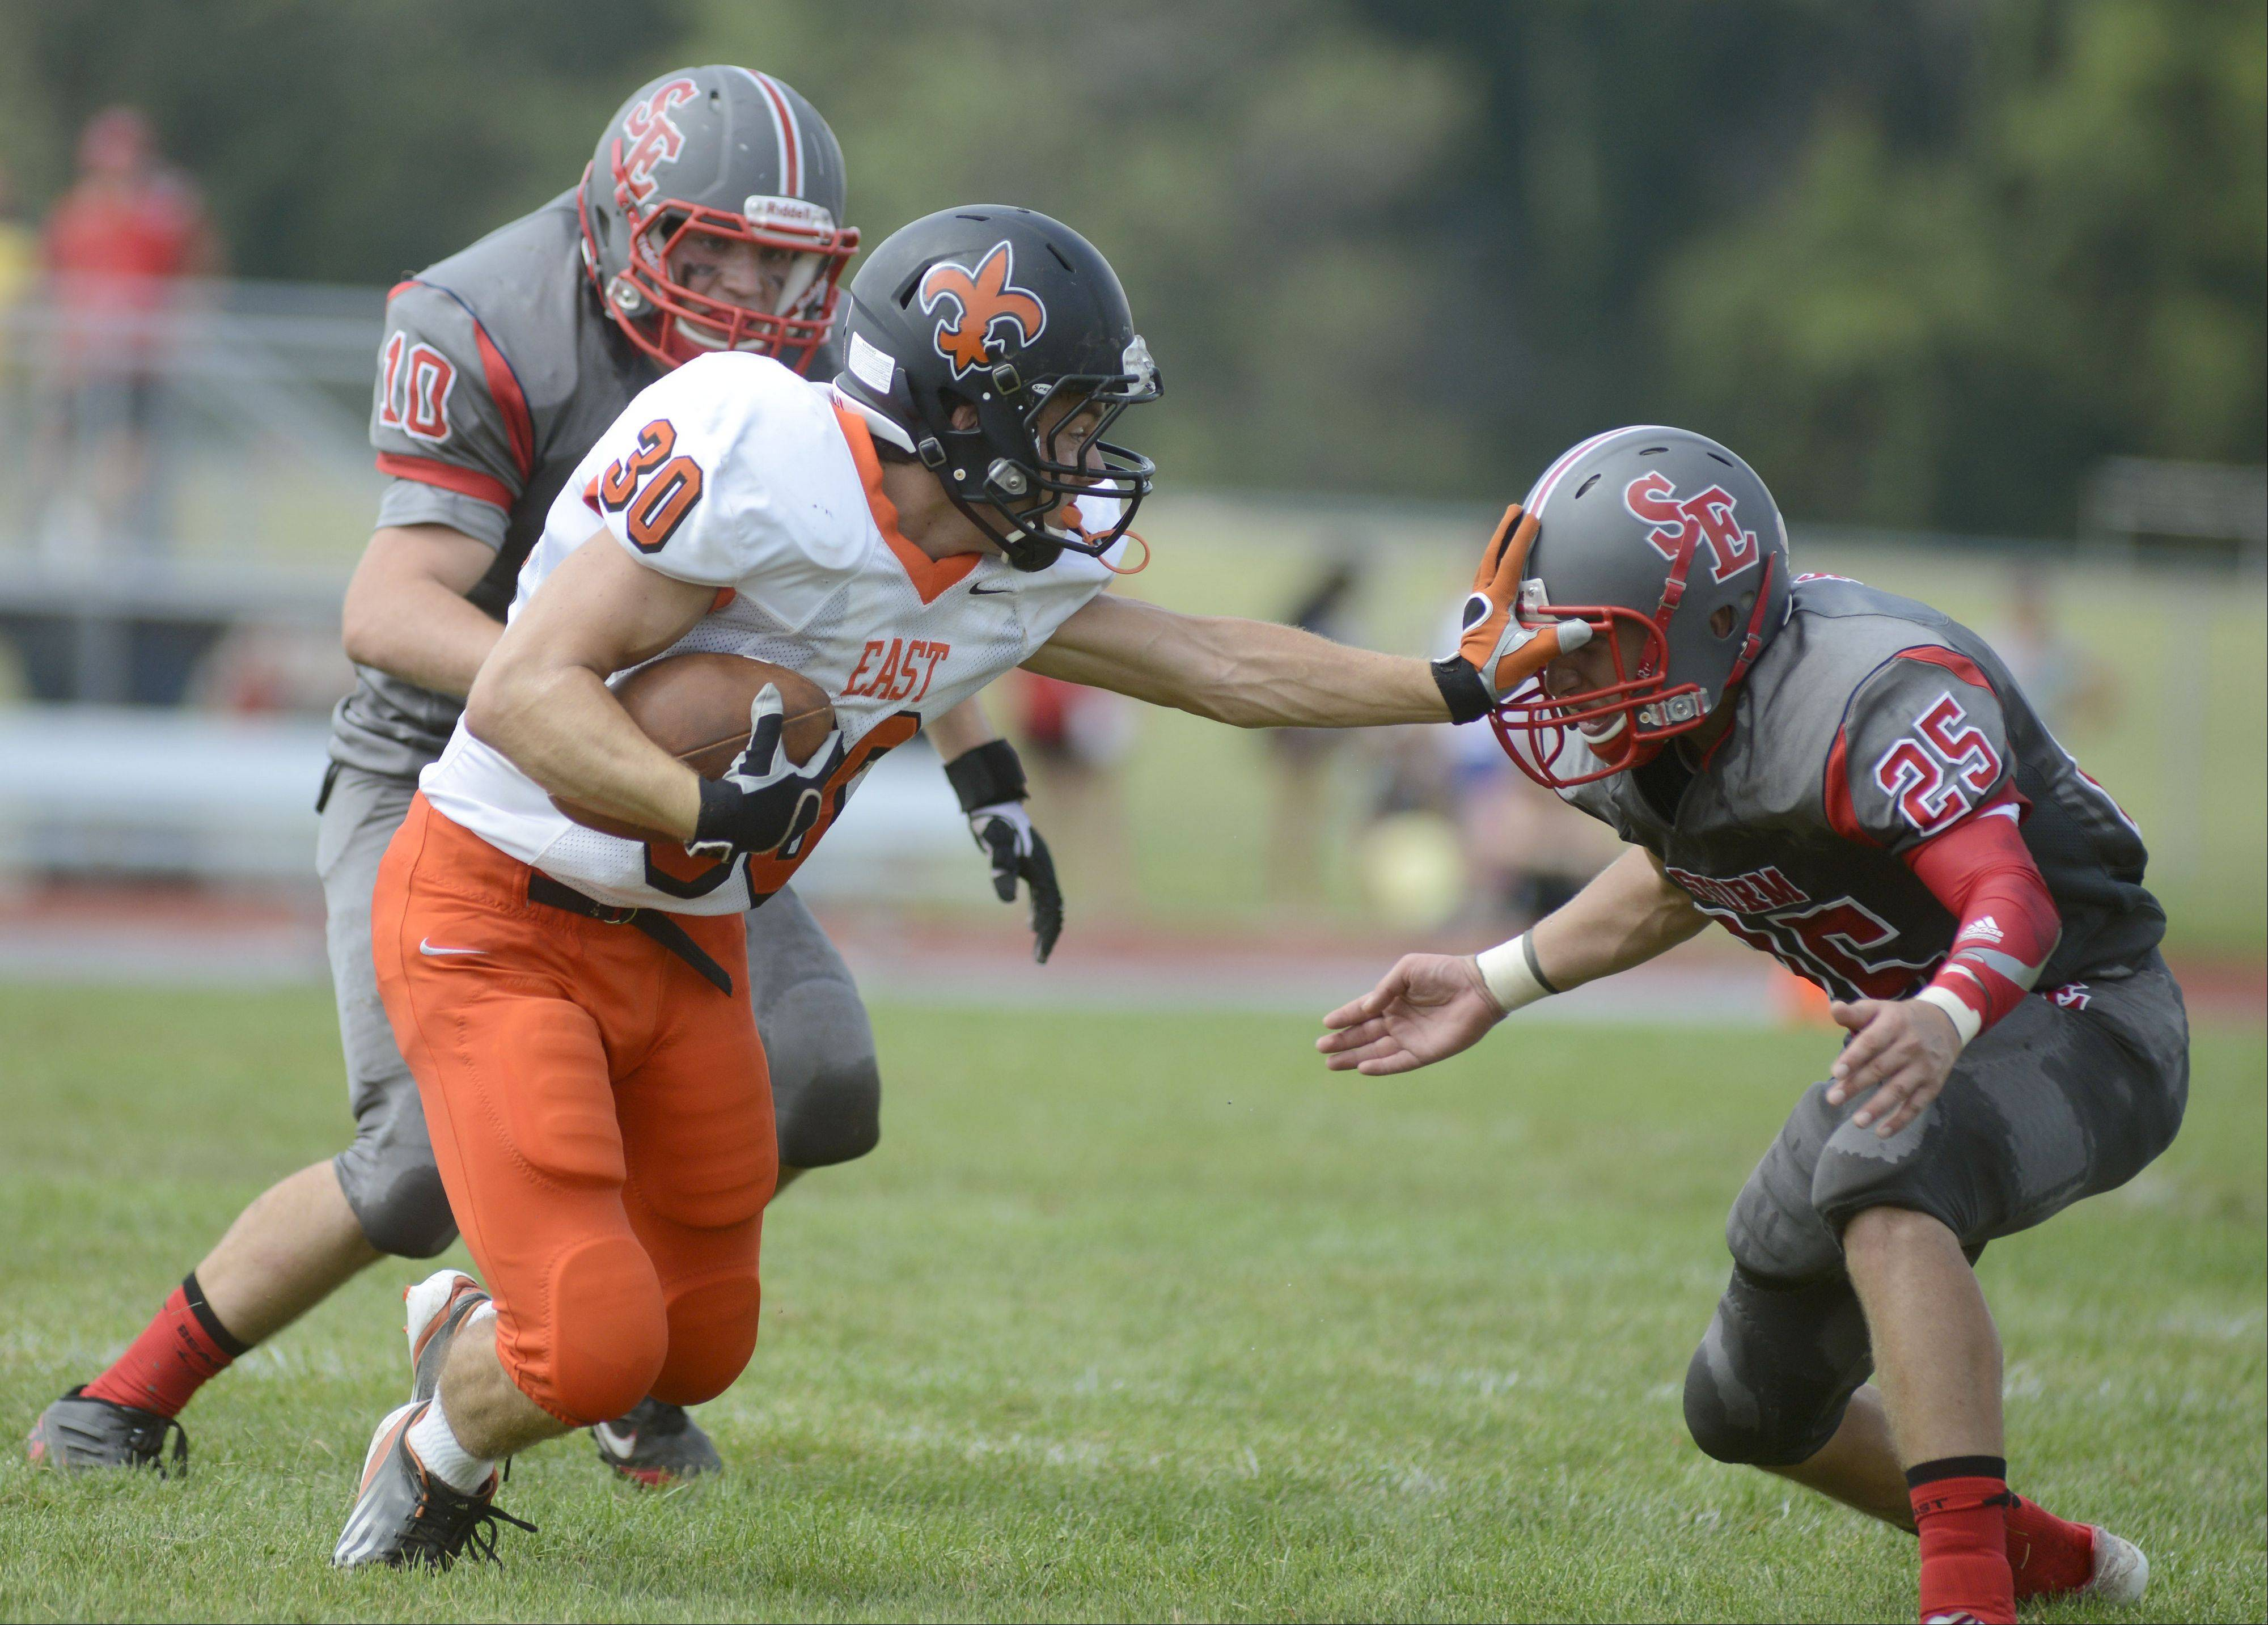 St. Charles East's Mitch Munroe strong-arms South Elgin's Nino Arredondo in the first quarter on Saturday, August 31.